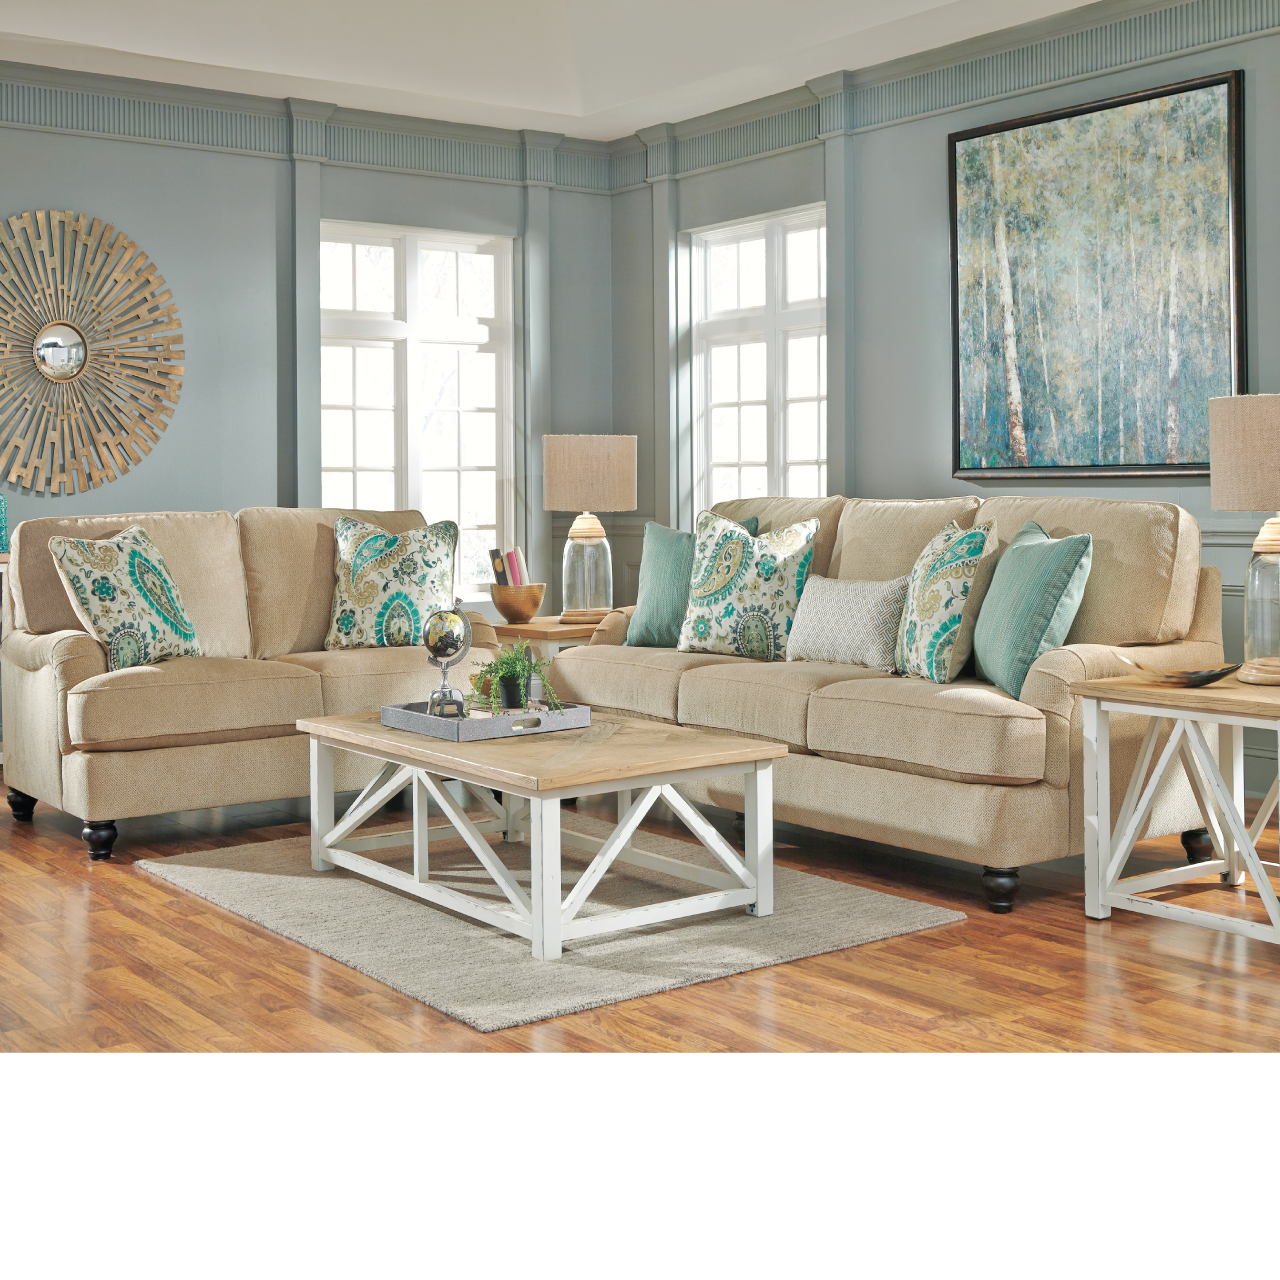 Coastal Living Room Ideas  Lochian Sofa by Ashley Furniture at Kensington  Furniture  I love. Coastal Living Room Ideas  Lochian Sofa by Ashley Furniture at